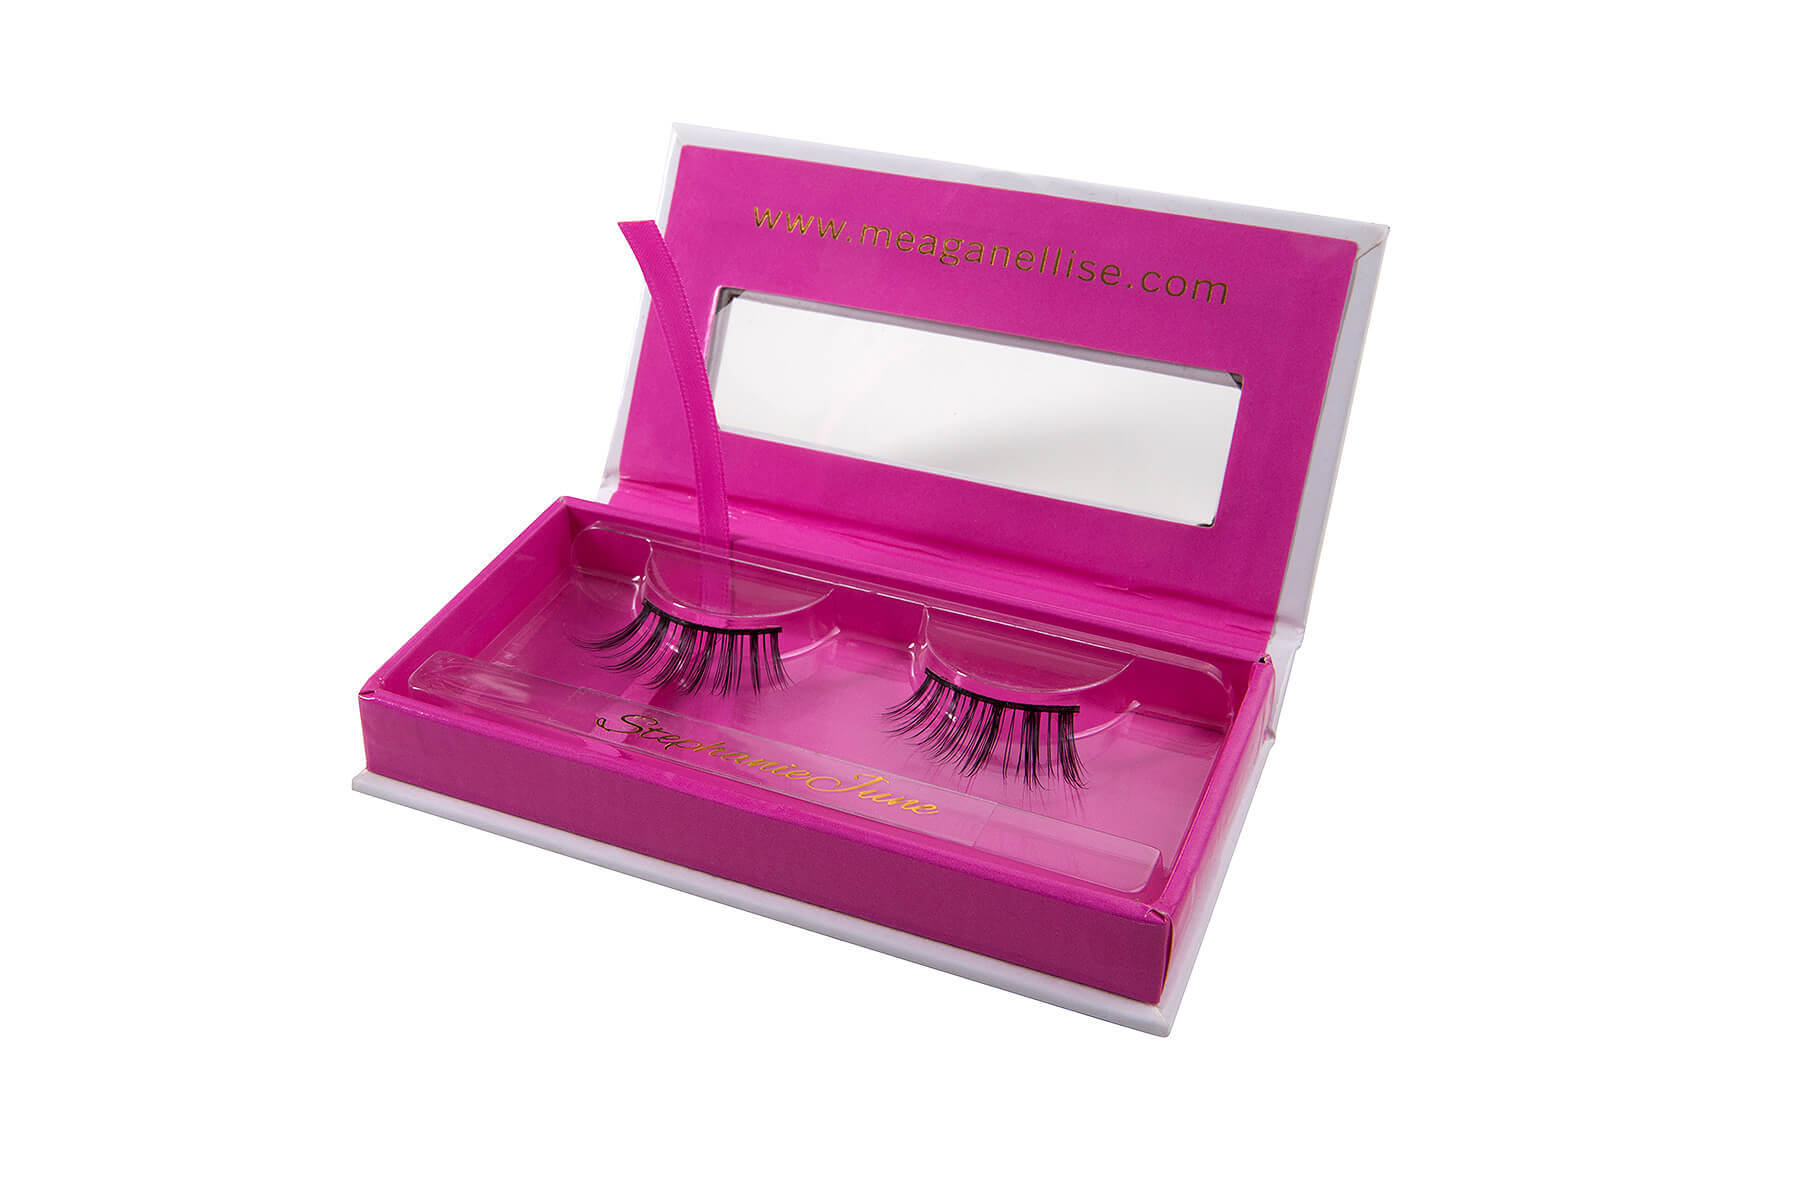 StephanieJune Mink Lashes - Box Open